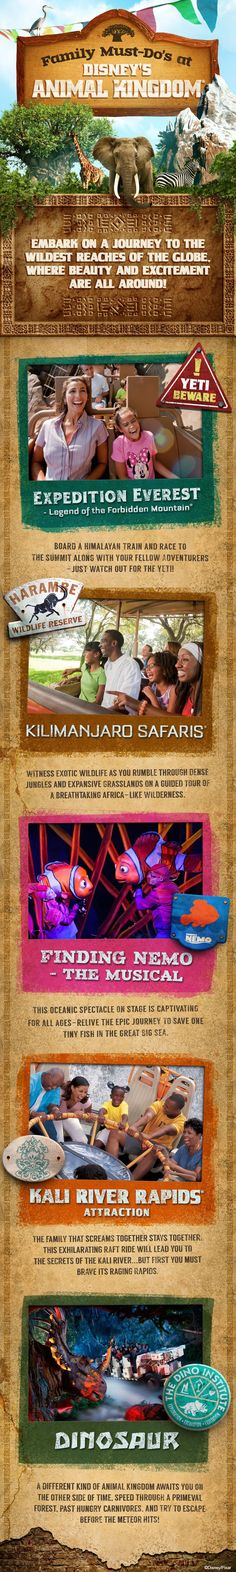 Start your expedition at the Walt Disney World Resort's wildest theme park with these Family Must Do's at Disney's Animal Kingdom.